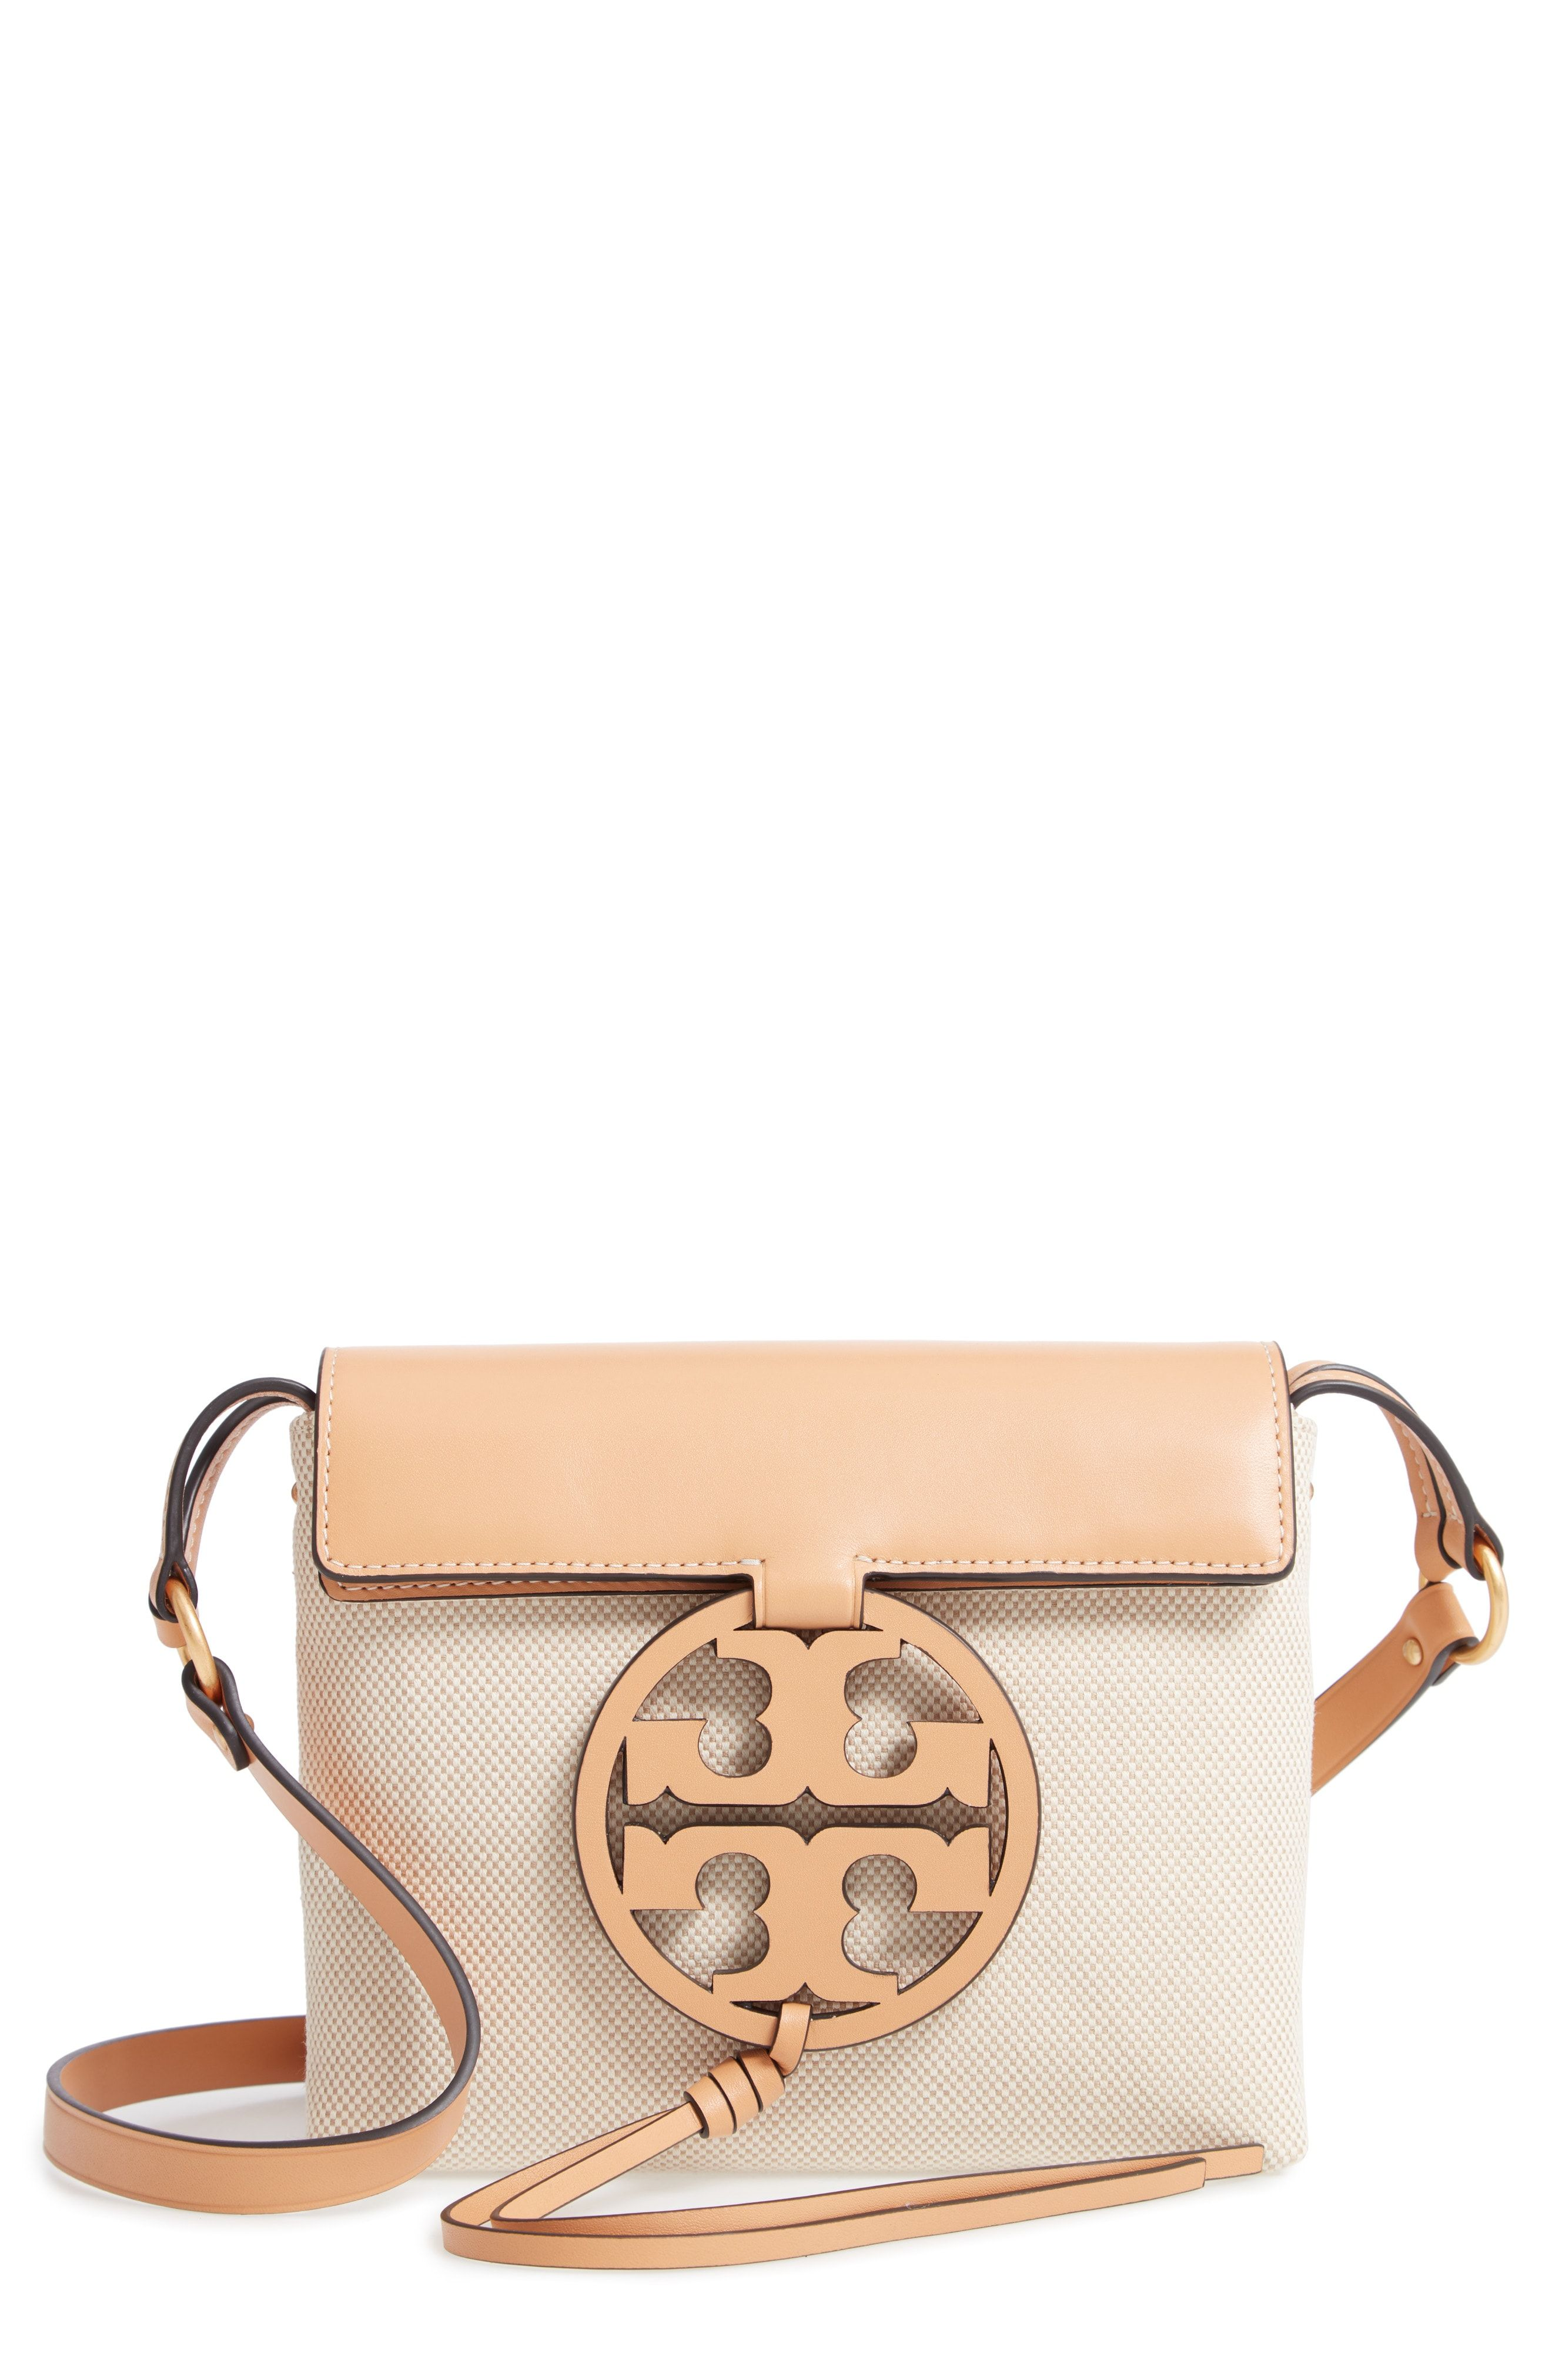 f53dfc90d69 Tory Burch Miller Crossbody Bag